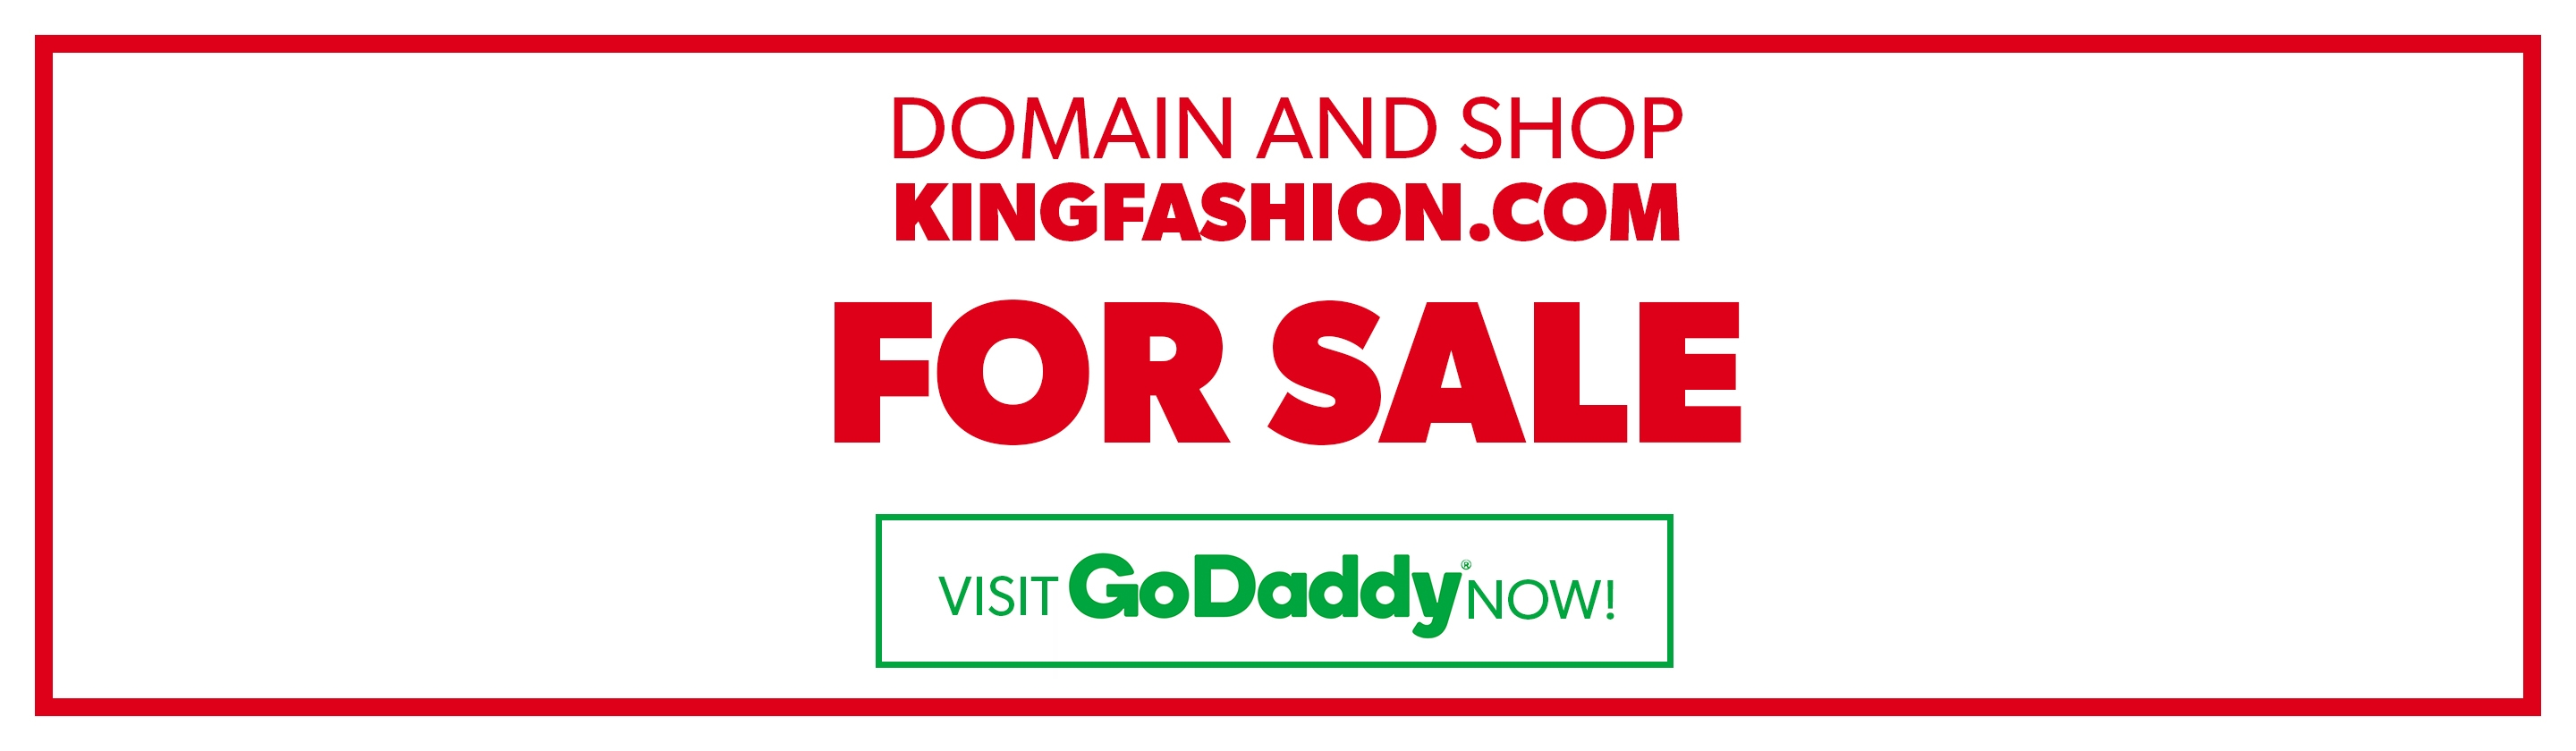 KingFashion.com FOR SALE